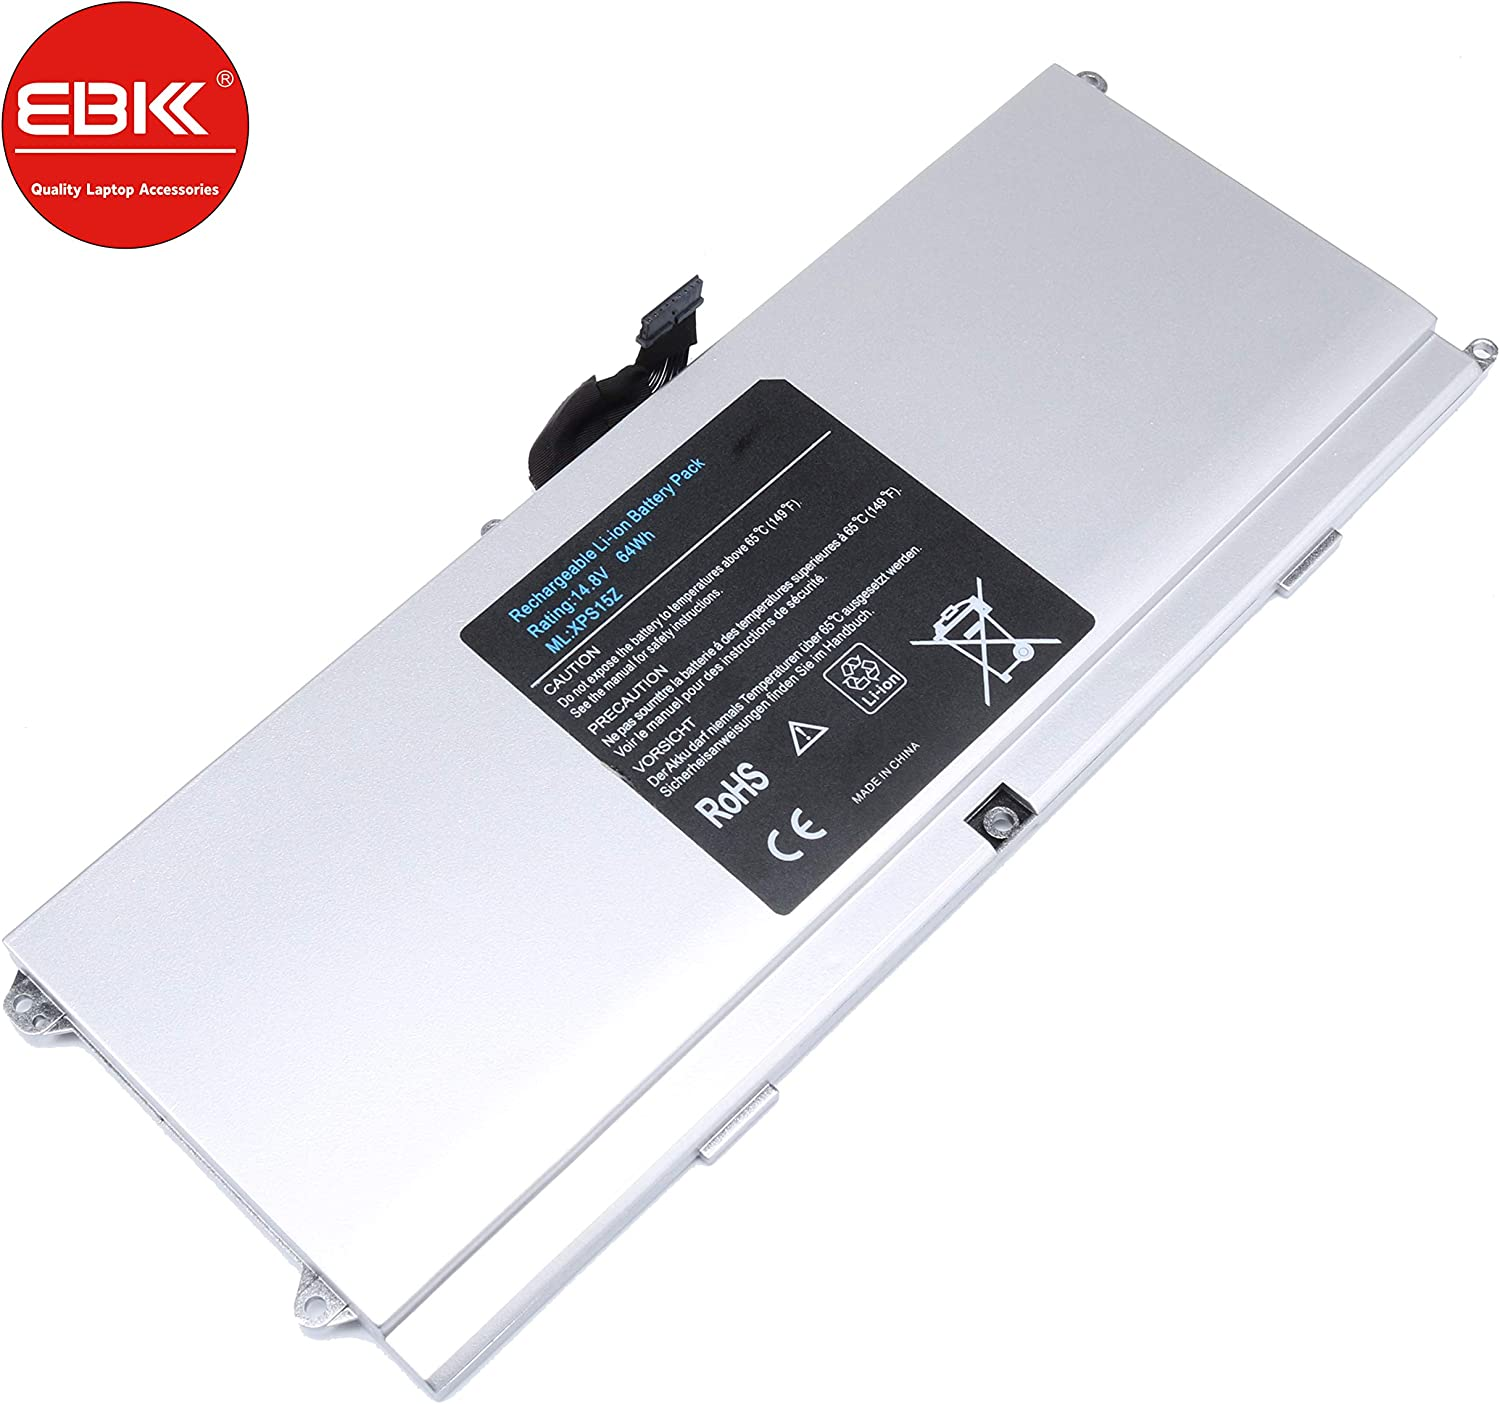 EBKK 0HTR7 NMV5C 075WY2 Battery for DELL XPS 15Z L511Z L511X 【US Ship】